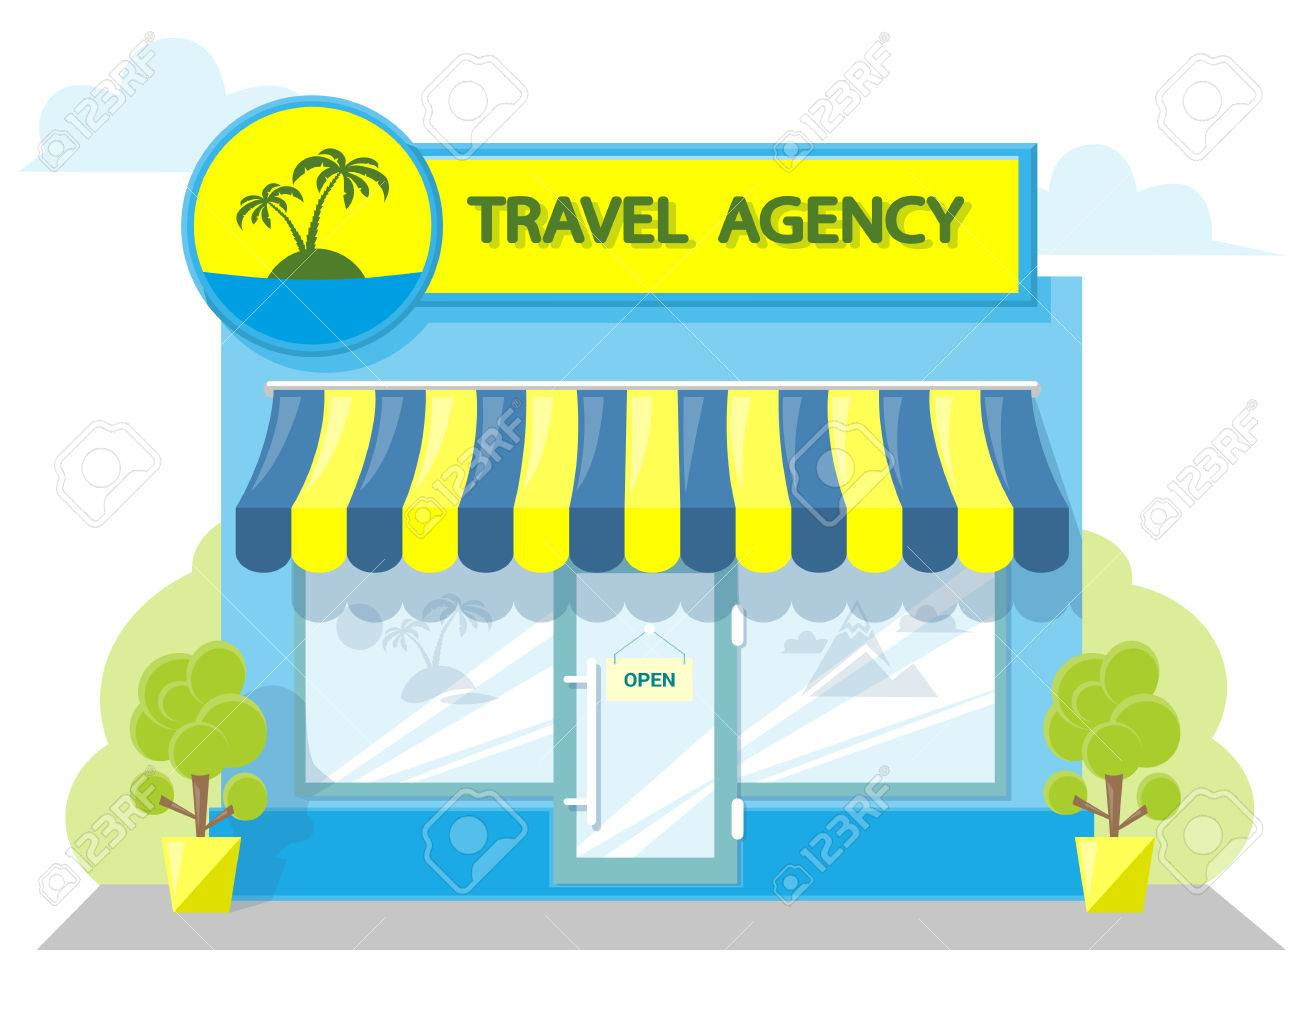 Facade Travel Agency Signboard With Emblem Awning And Symbol In Windows Concept Front